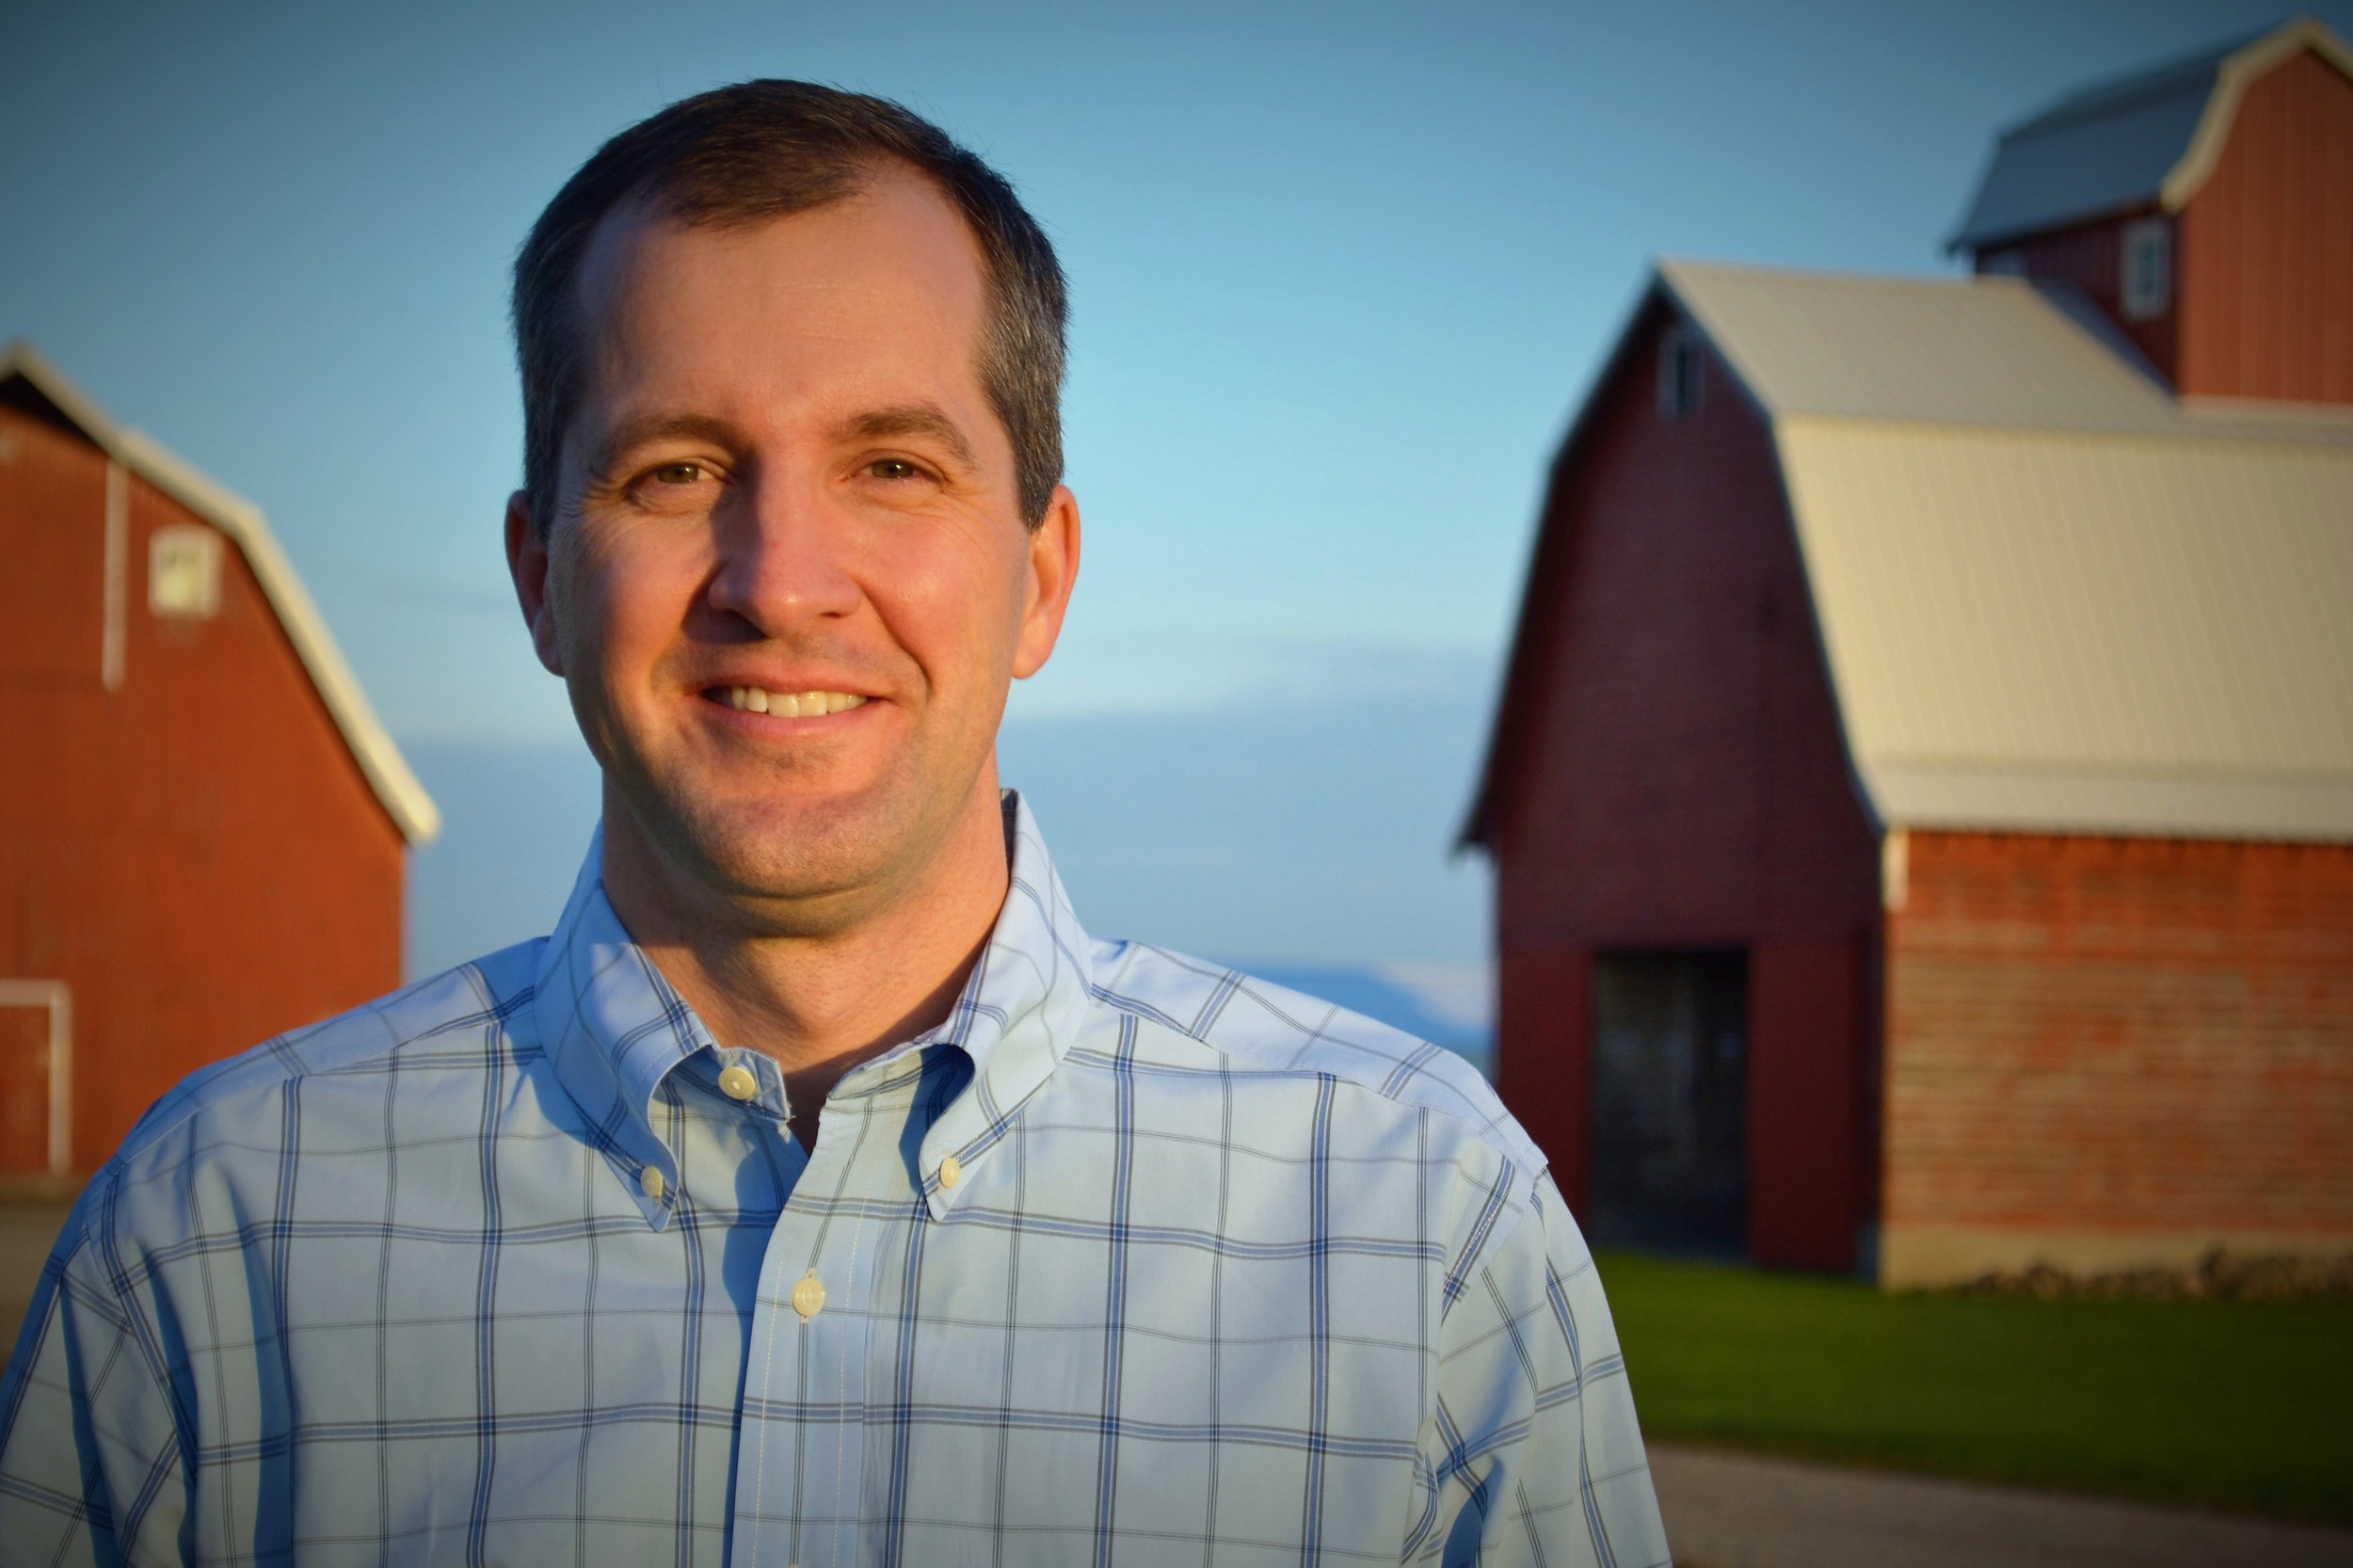 Mike Naig, Iowa Secretary of Agricultureiowaagriculture.gov -